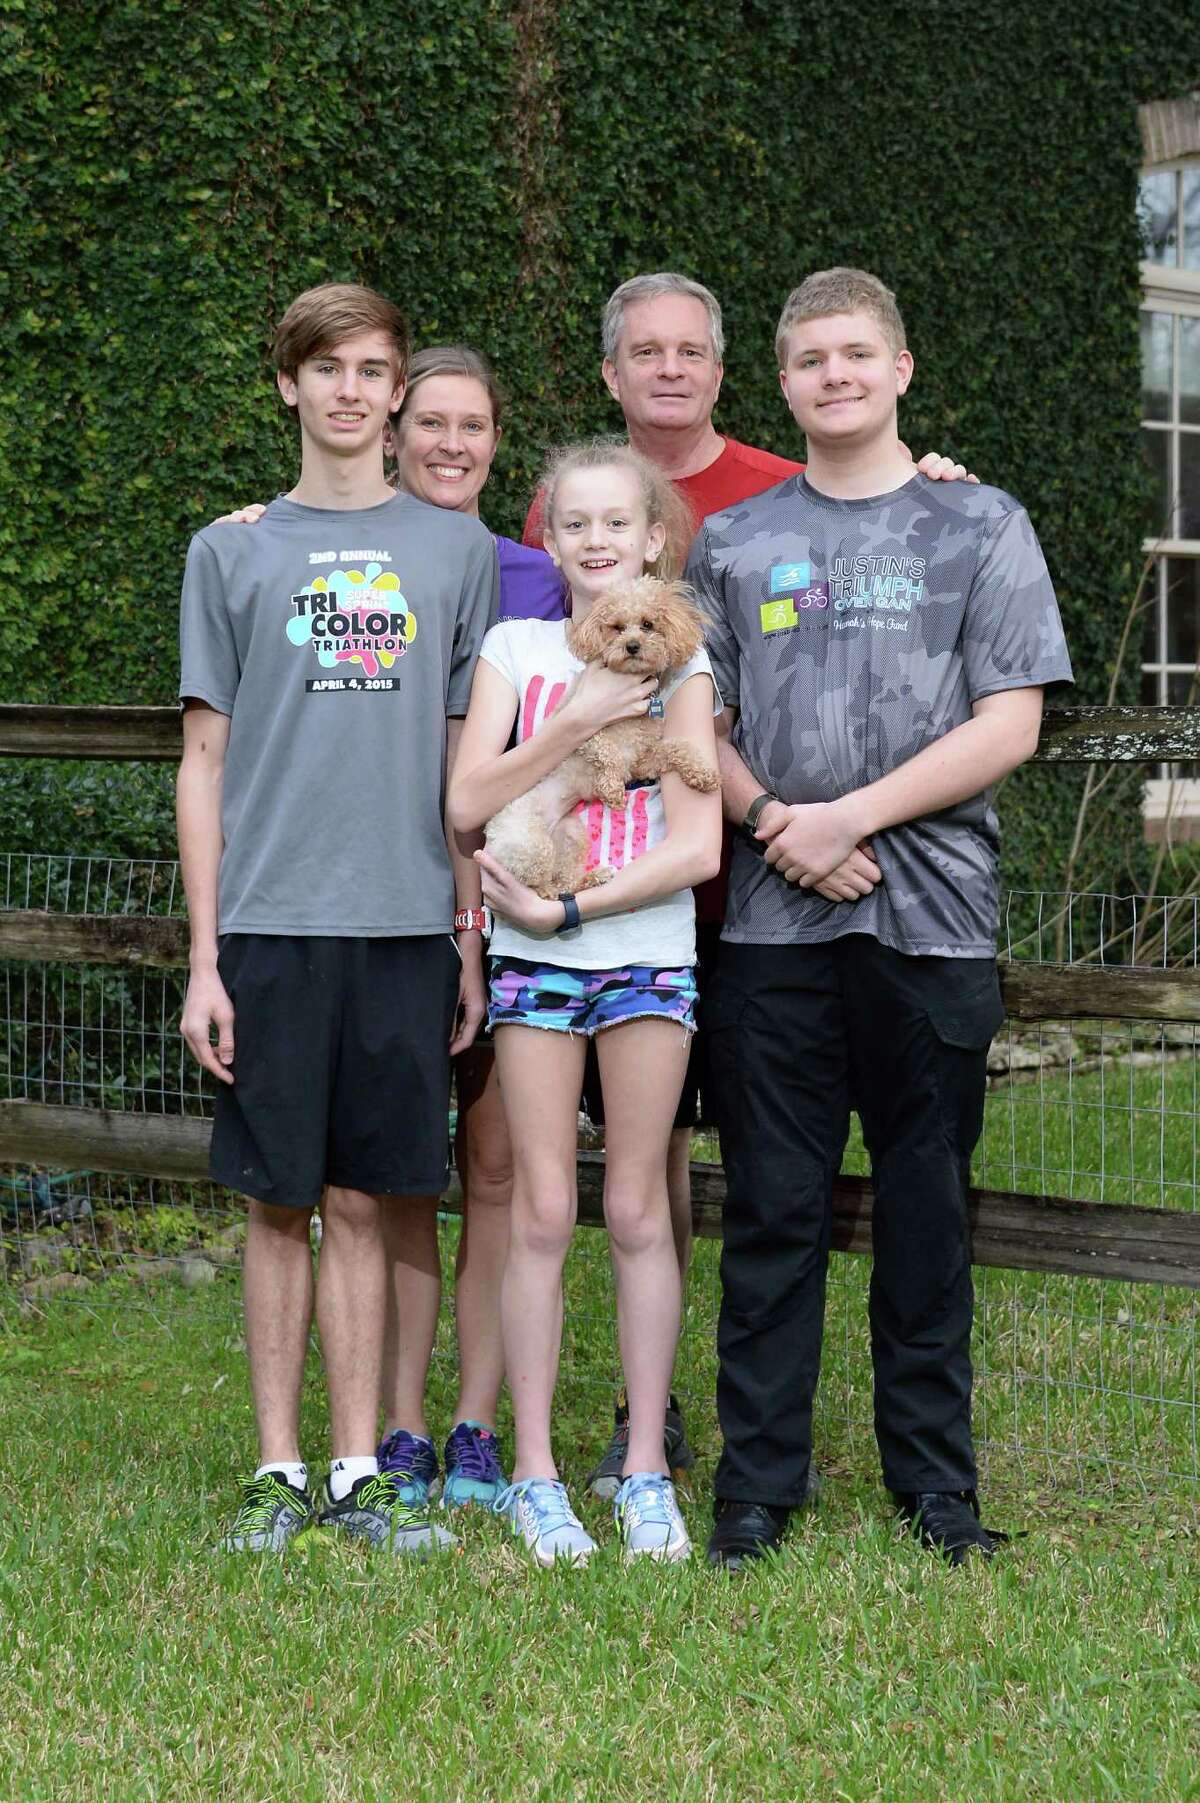 The Clark Family outside their home in Bellaire, TX on Wednesday January 25, 2017. Pictured are (L-R) Jared, Lagenia, Lexi, David and Justin Clark.